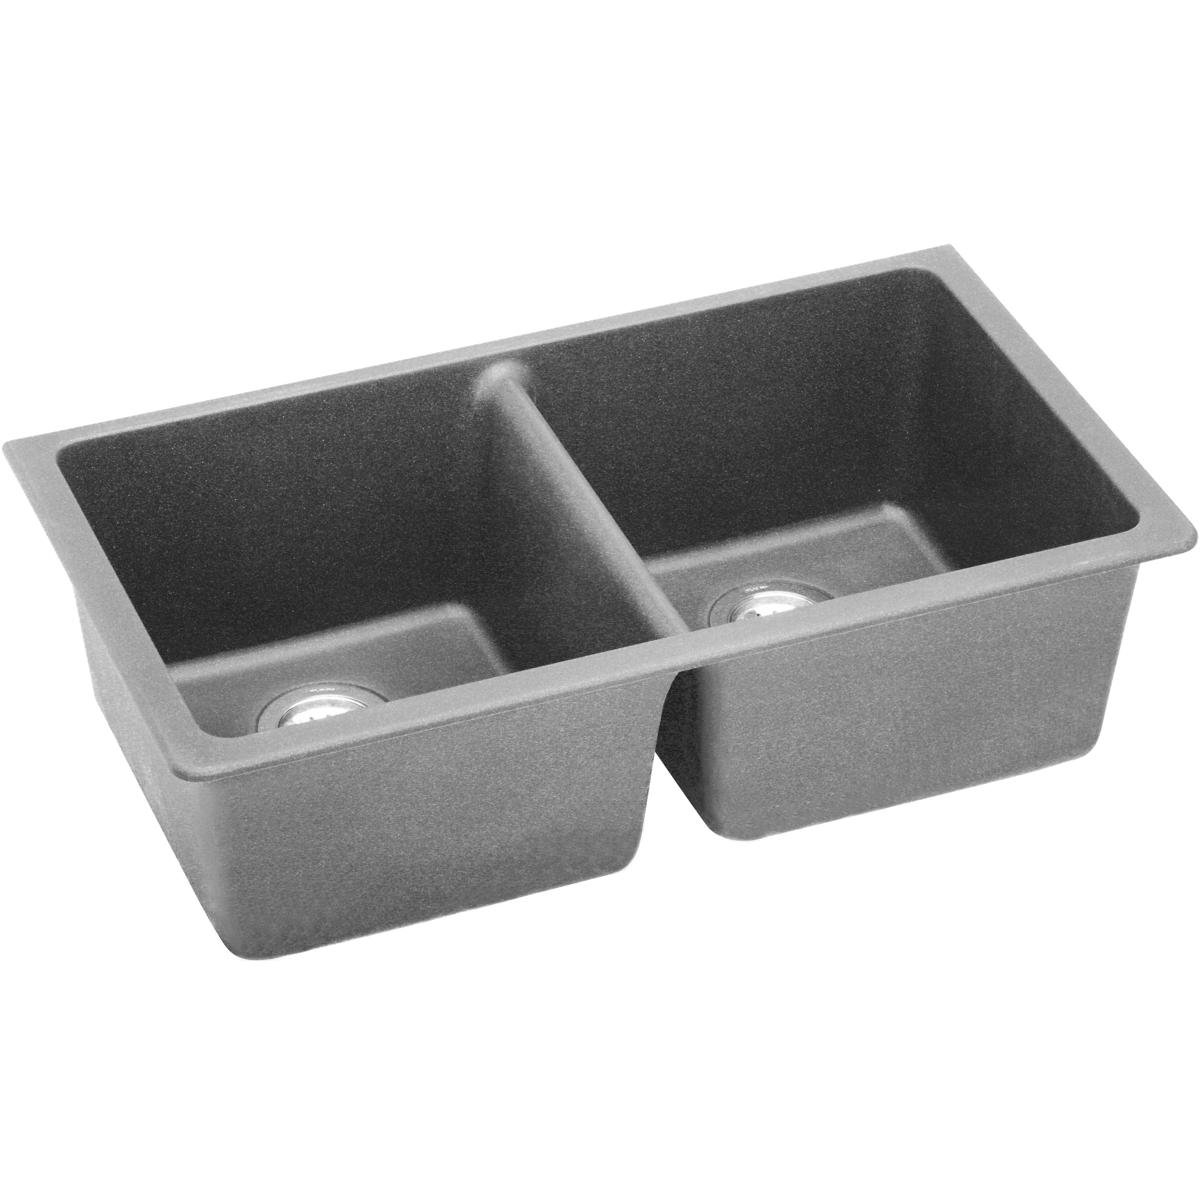 ELKAY ELGU3322GS0 QUARTZ CLASSIC 33' x 18-3/4' 9-1/2' EQUAL DOUBLE BOWL UNDERMOUNT SINK, GREYSTONE MC364796